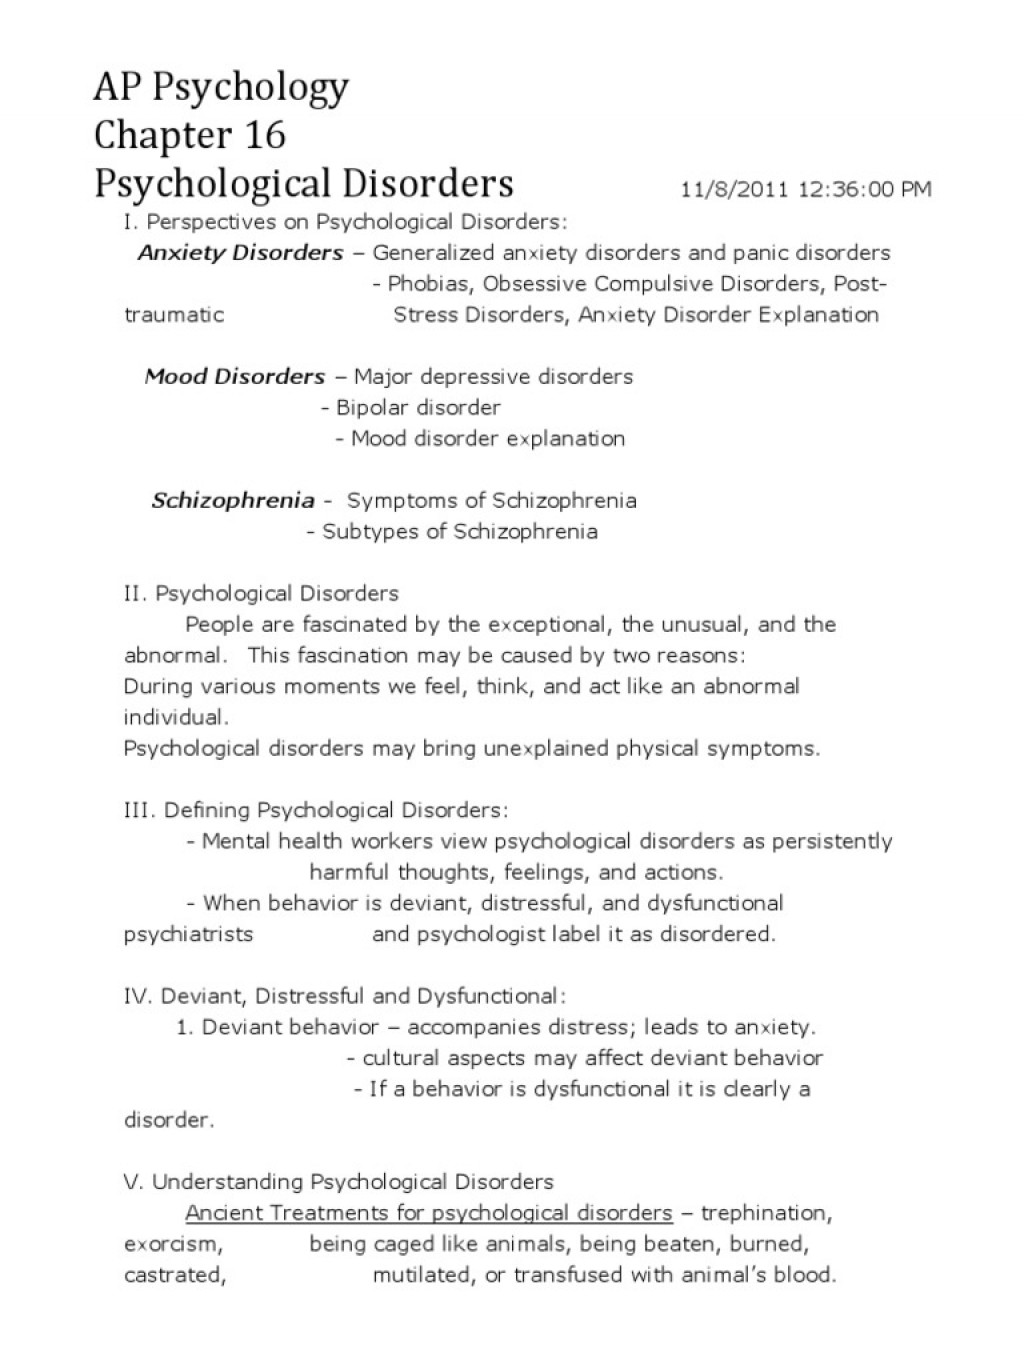 009 Bipolar Disorder Essay Topics Title Pdf College Introduction Question Conclusion Examples Outline Research Paper Criminal Fearsome 100 Justice Large